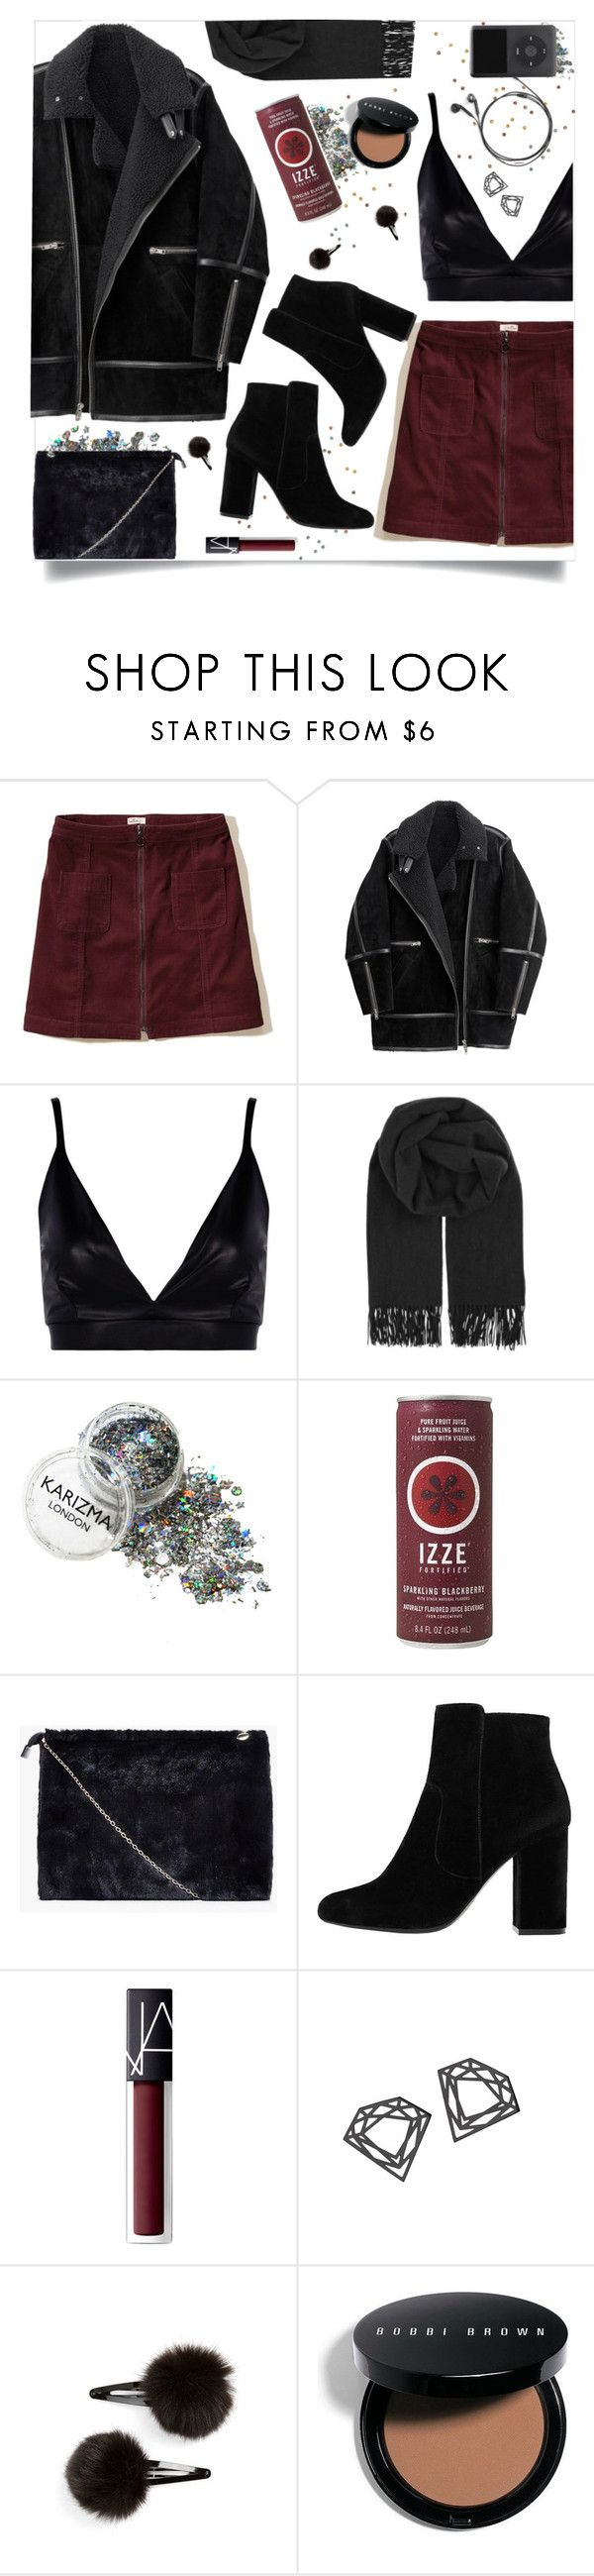 """More Than You Thought"" by brynhawbaker ❤ liked on Polyvore featuring Hollister Co., H&M, Boohoo, BeckSöndergaard, MANGO, NARS Cosmetics, Myia Bonner, Topshop and Bobbi Brown Cosmetics"